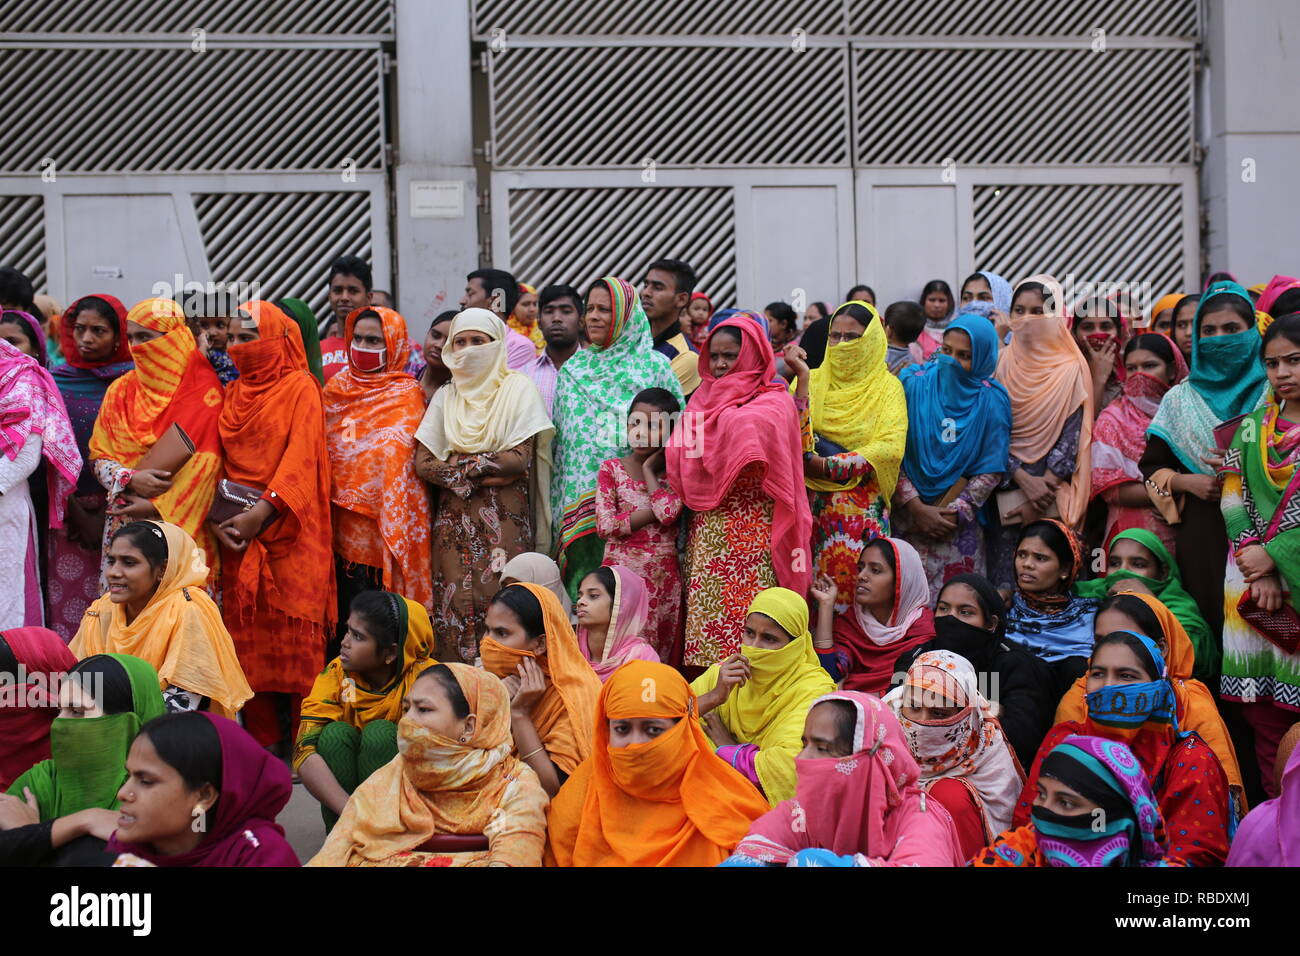 Dhaka, Bangladesh: Garment workers block a road during an ongoing protest to demand higher wages, in Dhaka, Bangladesh on January 9, 2019. © Rehman Asad / Alamy Stock Photo - Stock Image